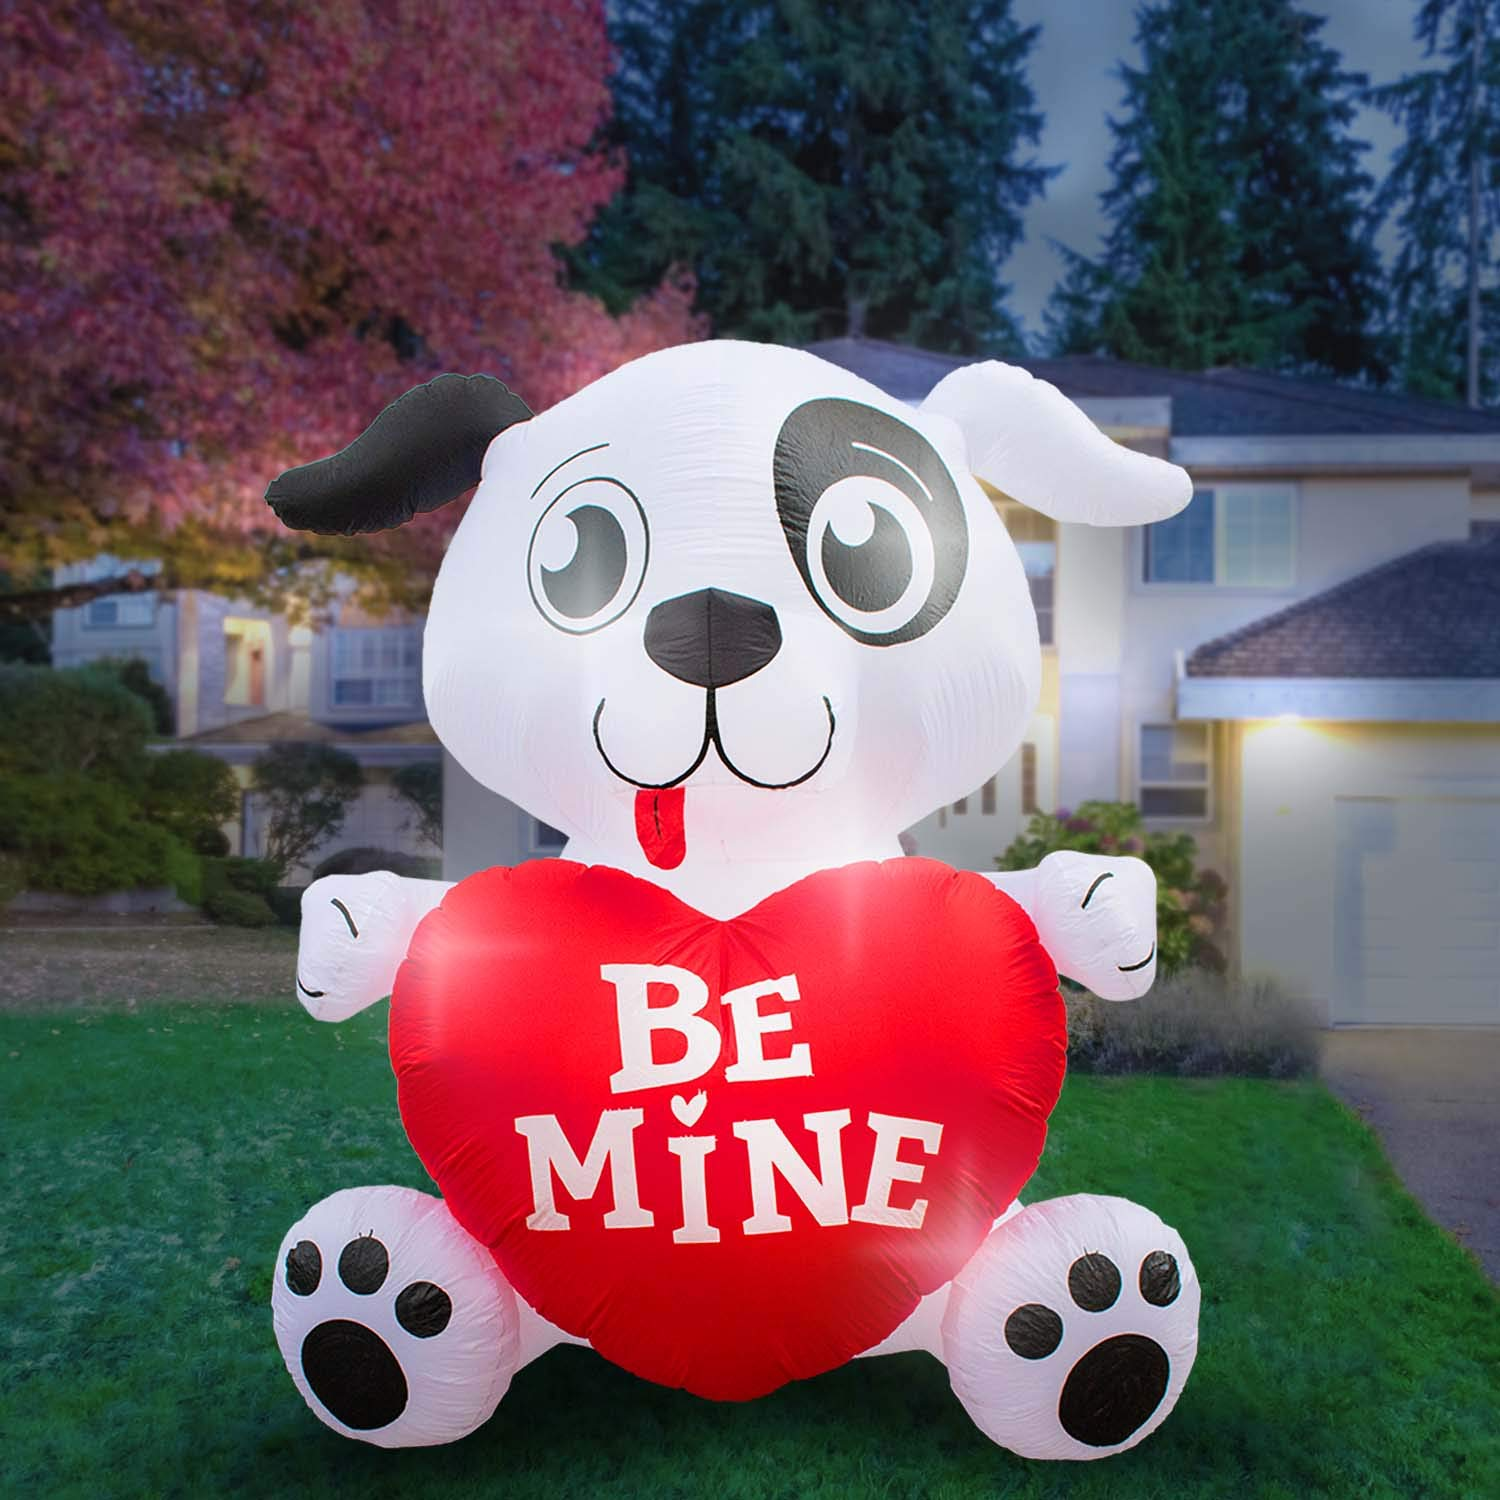 Holidayana 8 Foot Inflatable Dog with Heart Decoration, Outdoor Yard Decor, Includes Built-in Bulbs, Tie-Down Points, and Powerful Built in Fan